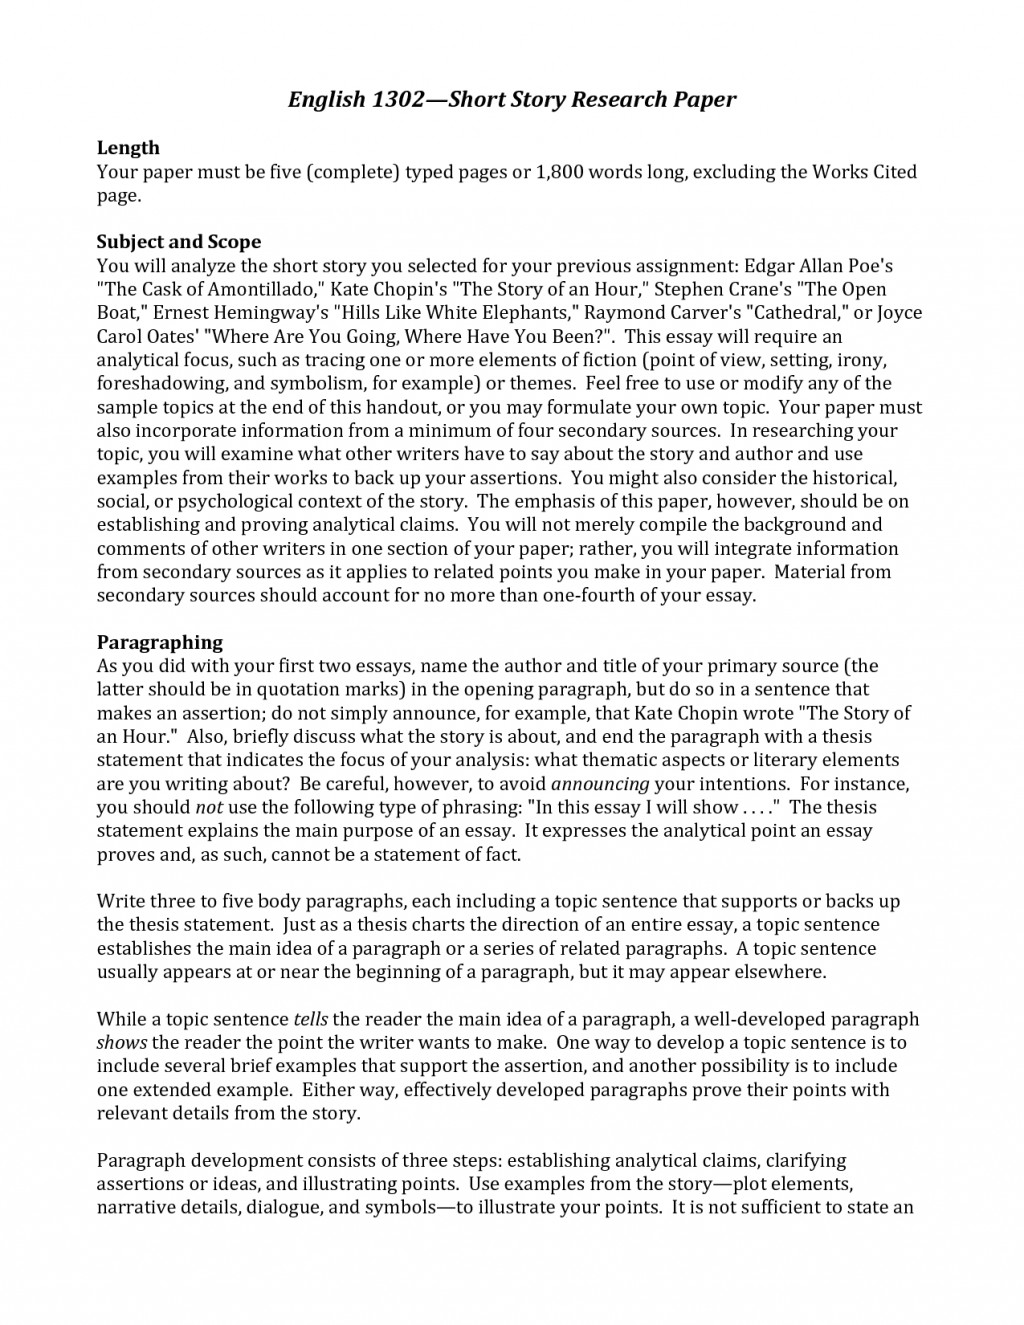 002 Ideas For Research Fascinating Paper Papers In Computer Science Middle School Topic High Large